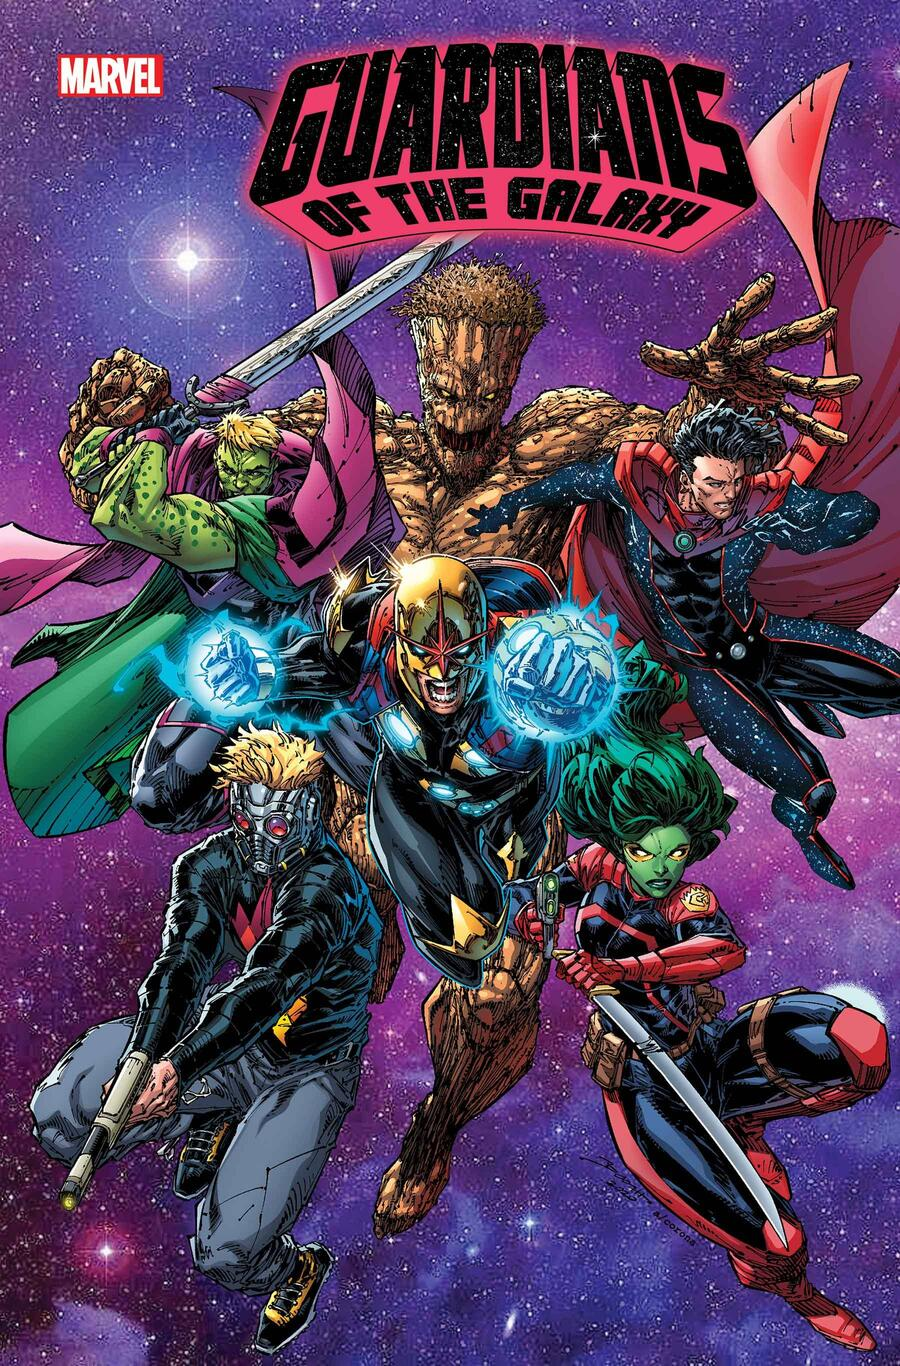 GUARDIANS OF THE GALAXY #13 cover by Brett Booth